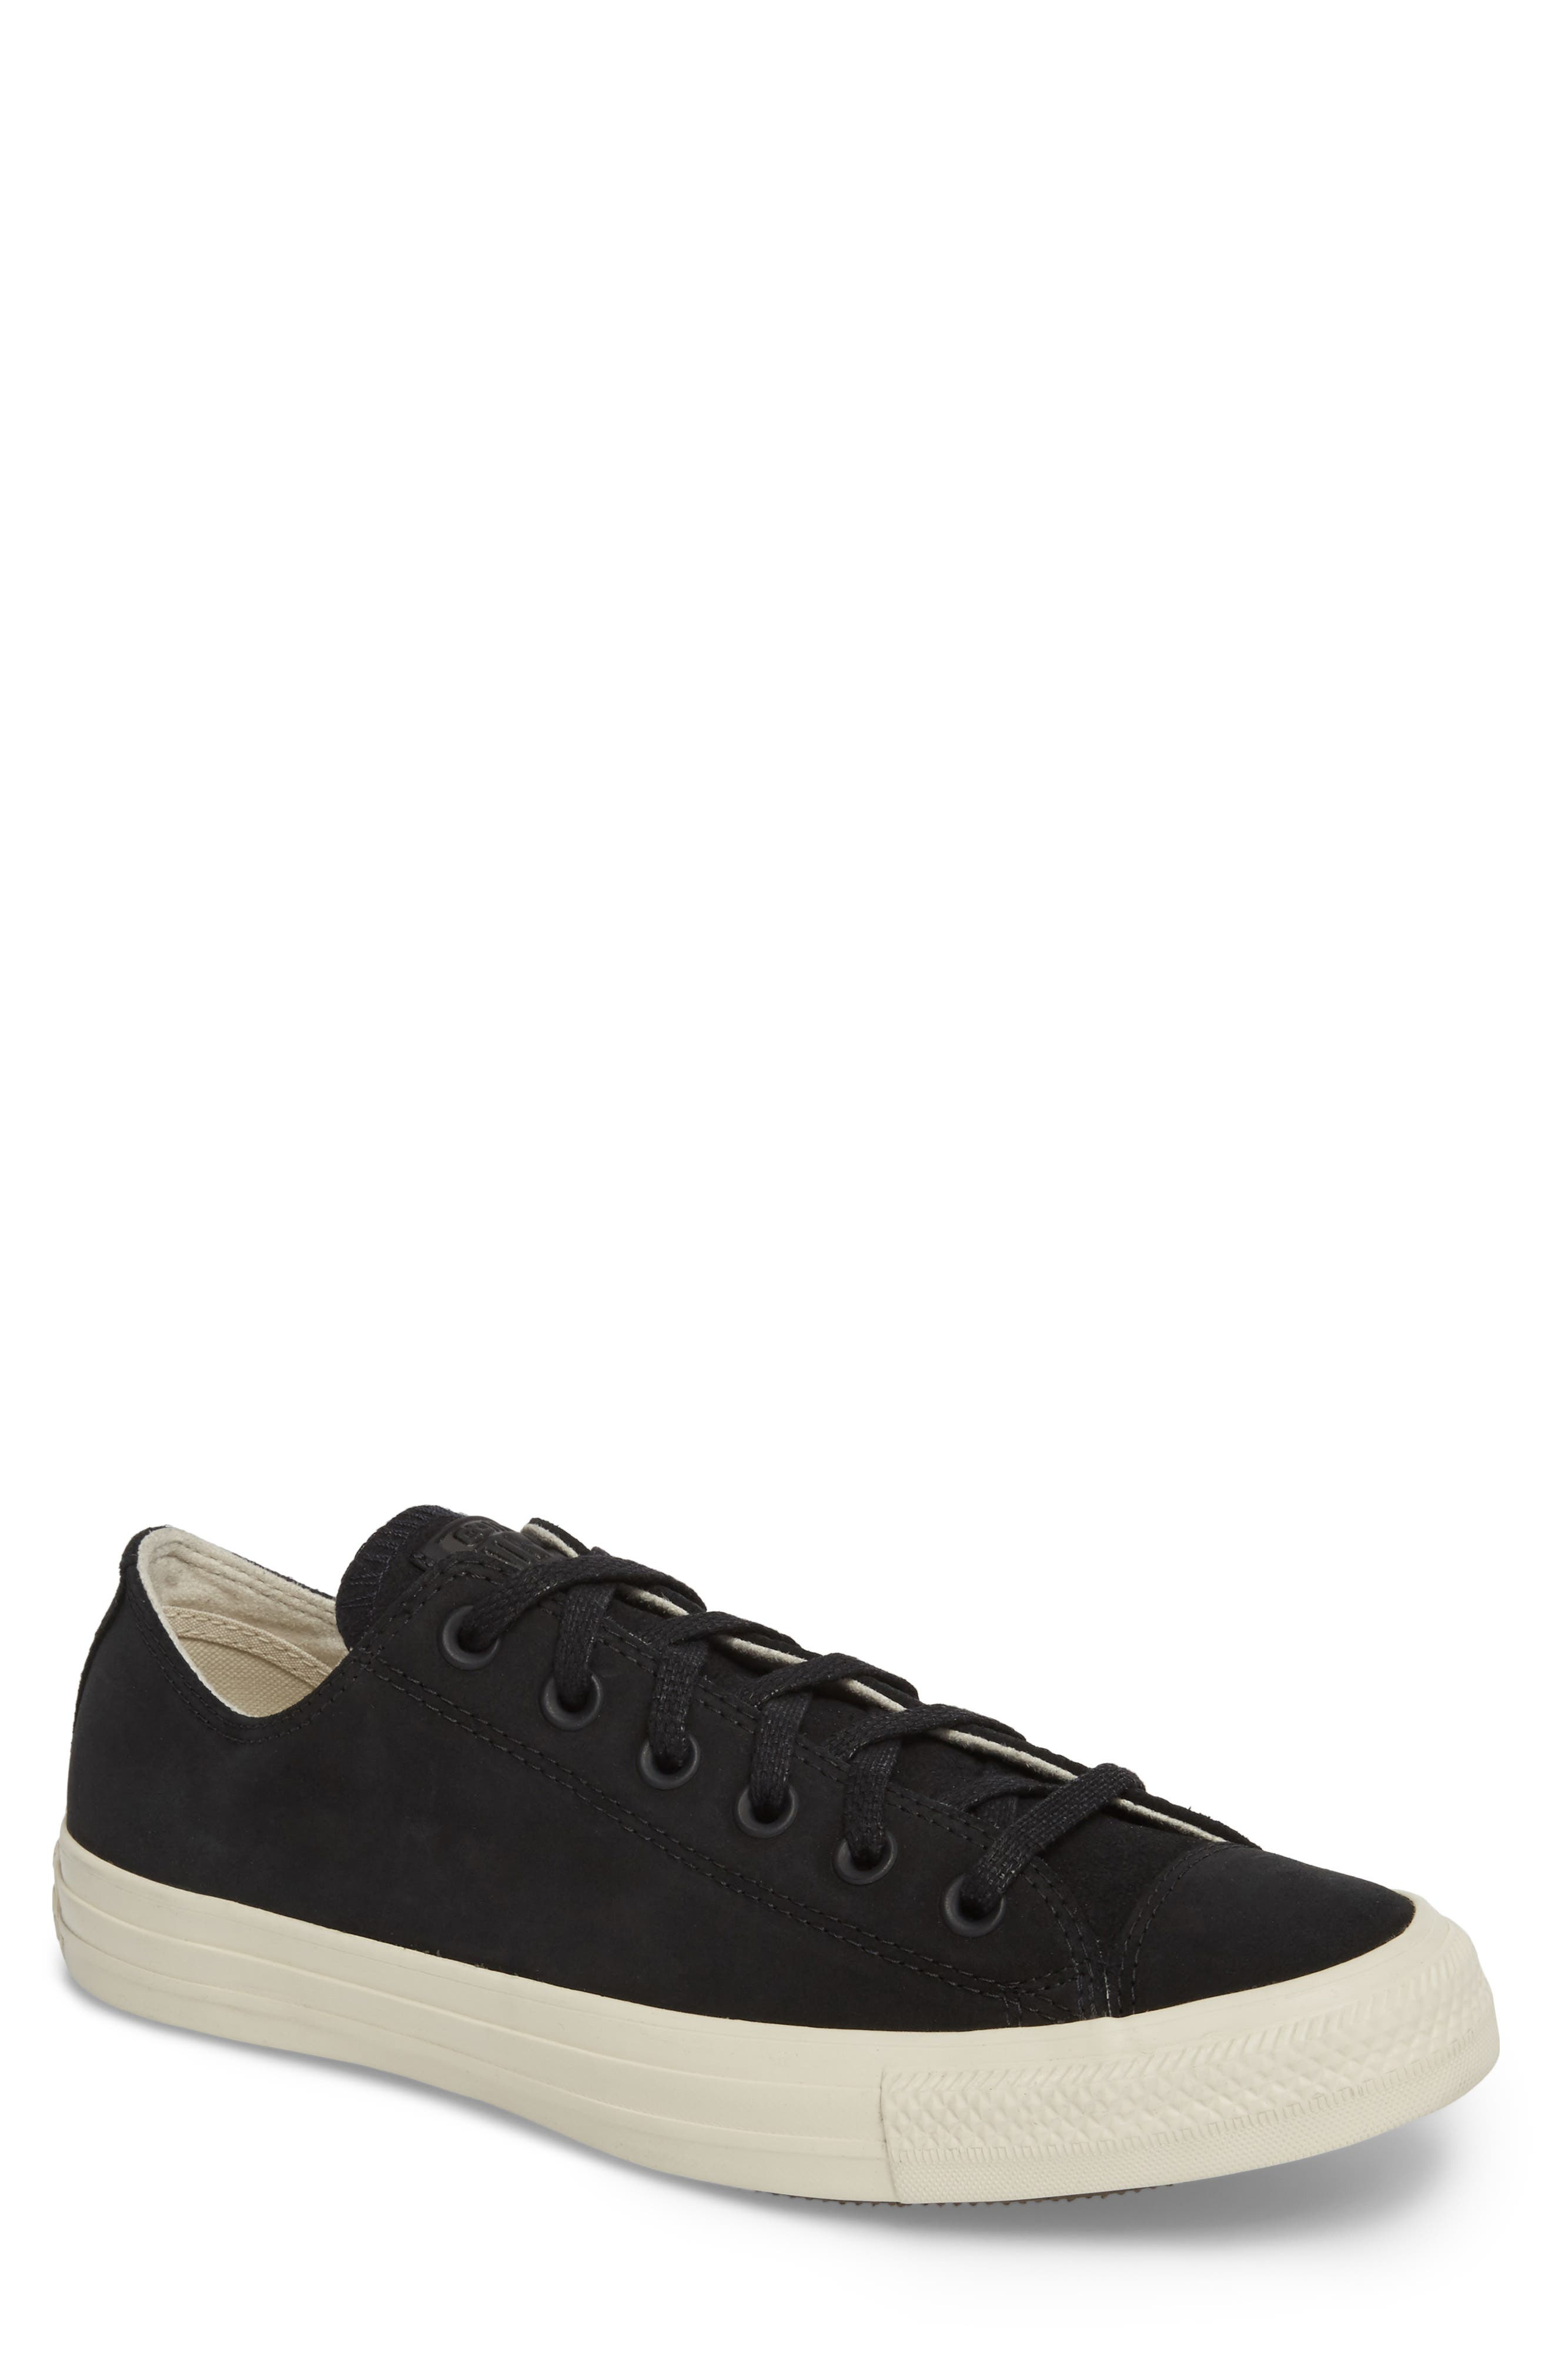 Chuck Taylor<sup>®</sup> All Star<sup>®</sup> Low Top Sneaker,                         Main,                         color, 001